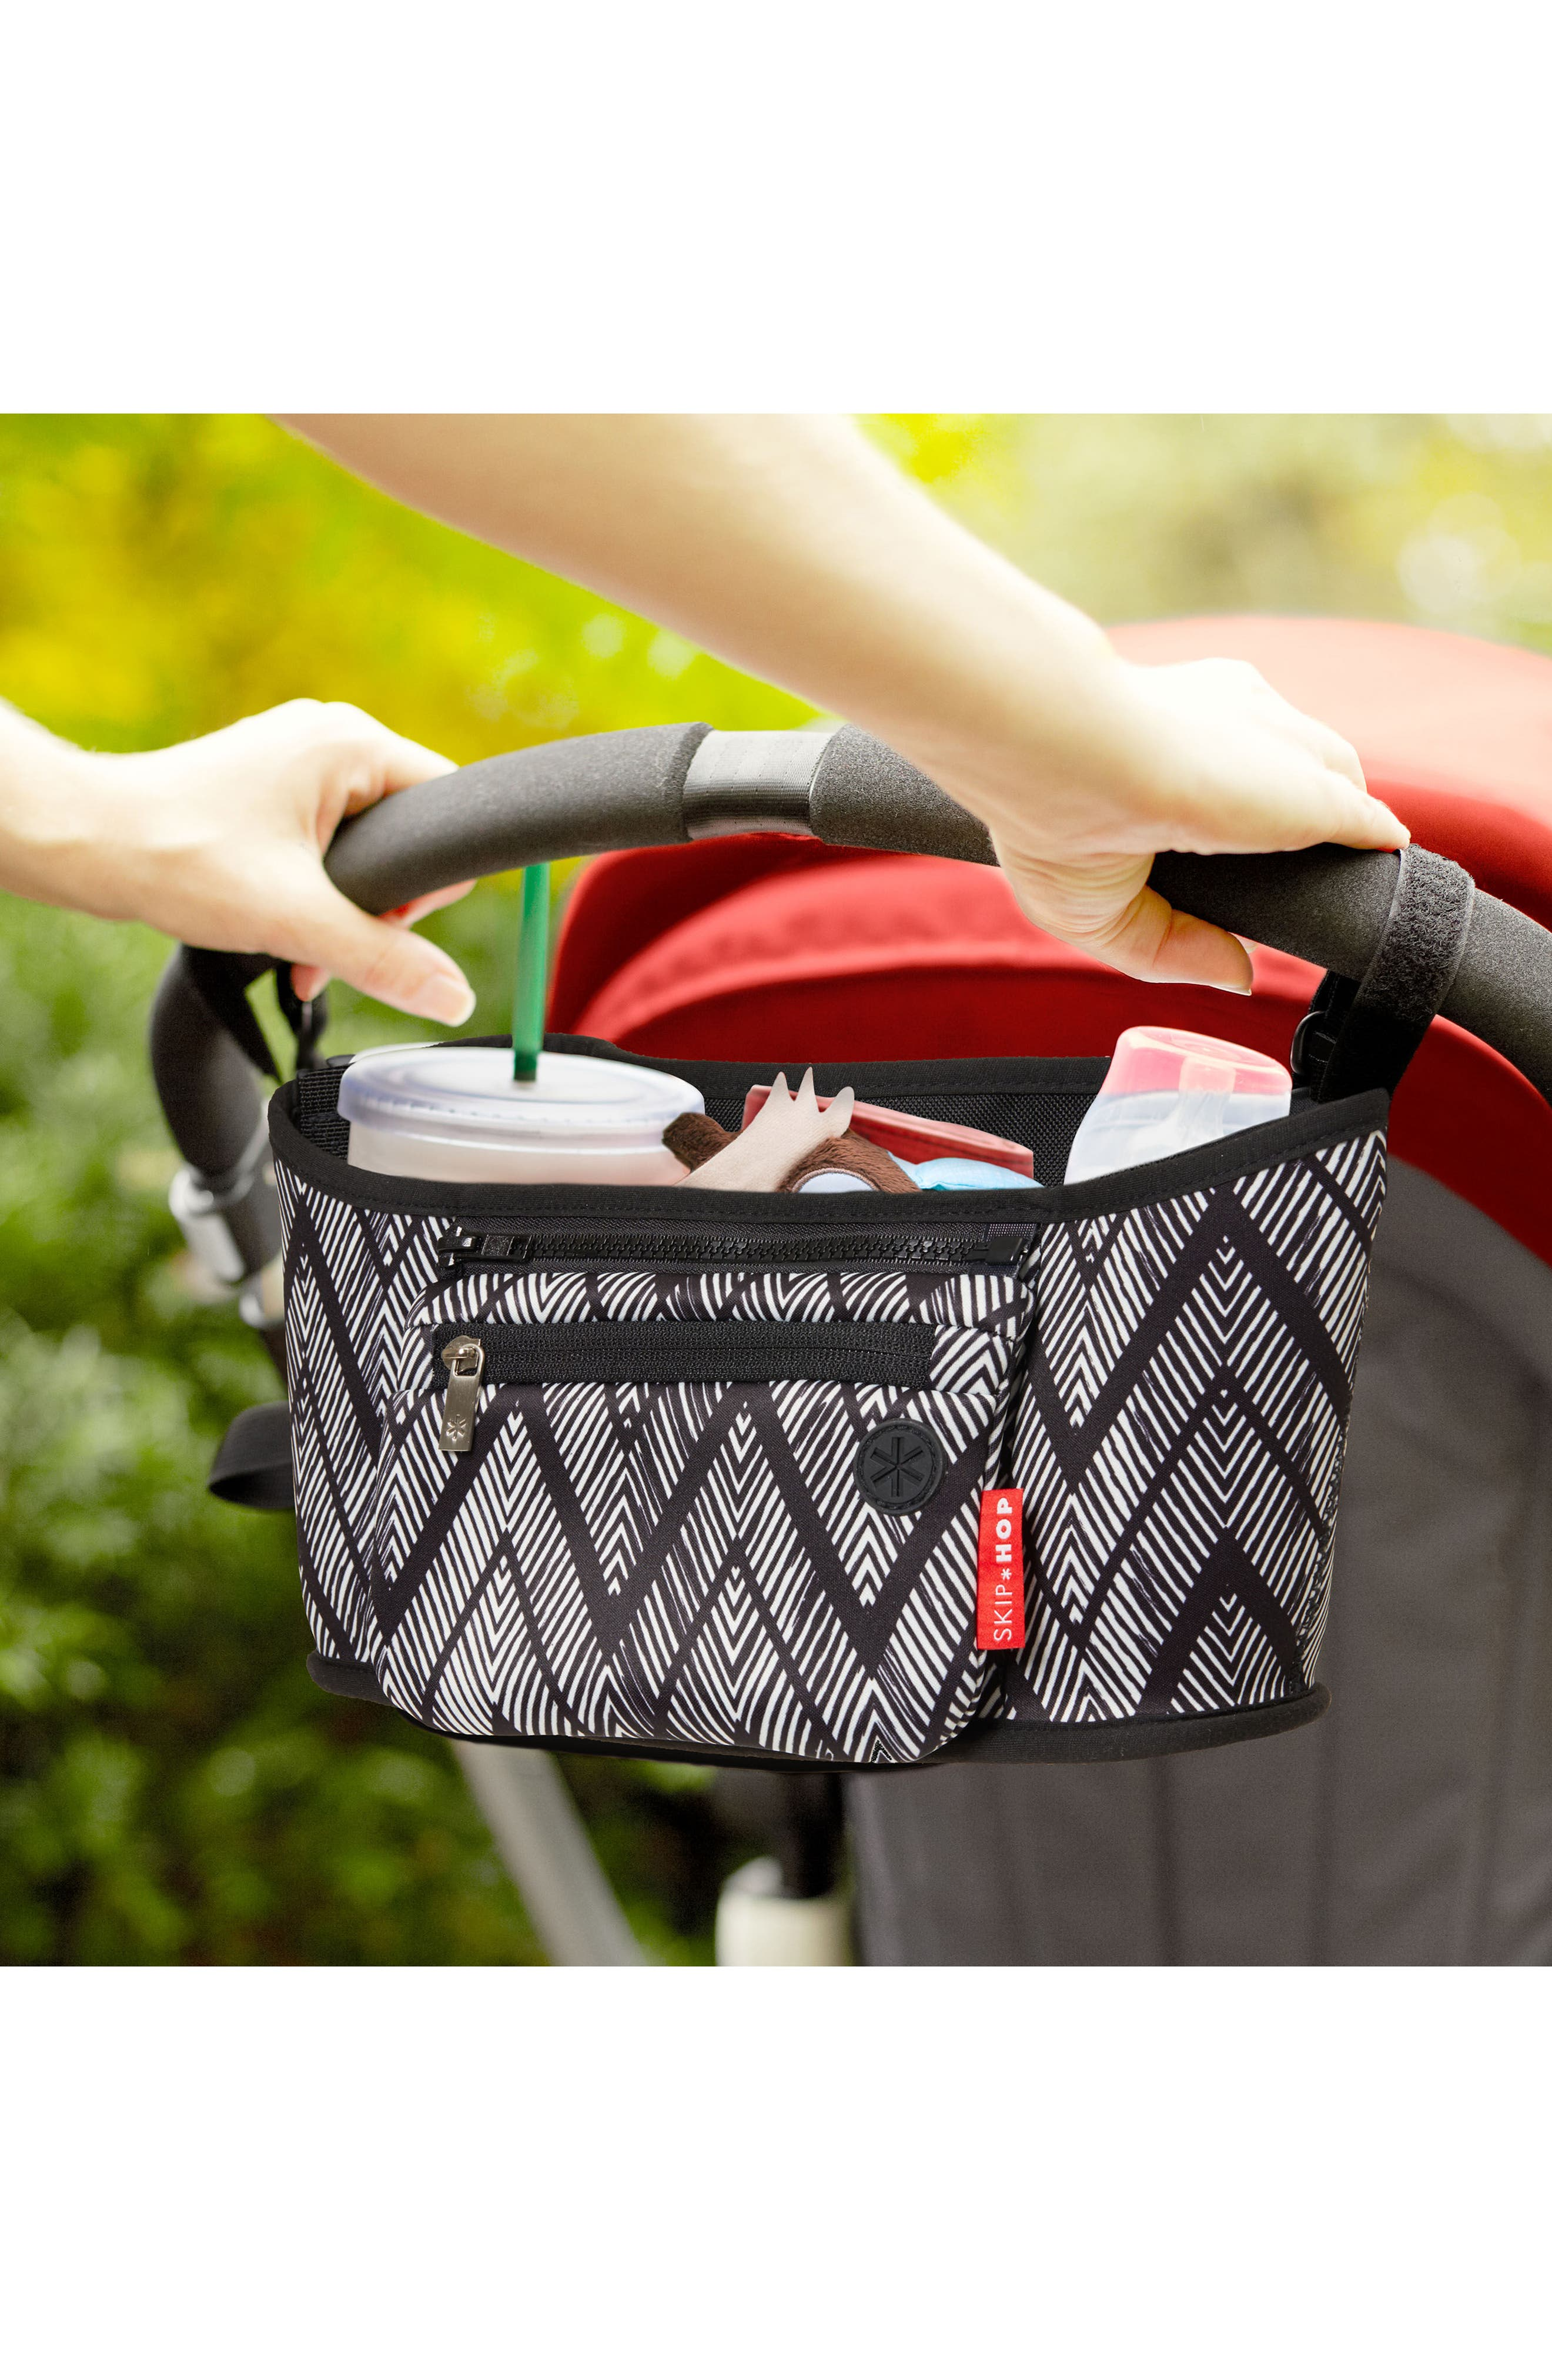 Stroller Organizer,                             Alternate thumbnail 4, color,                             Zig Zag Zebra